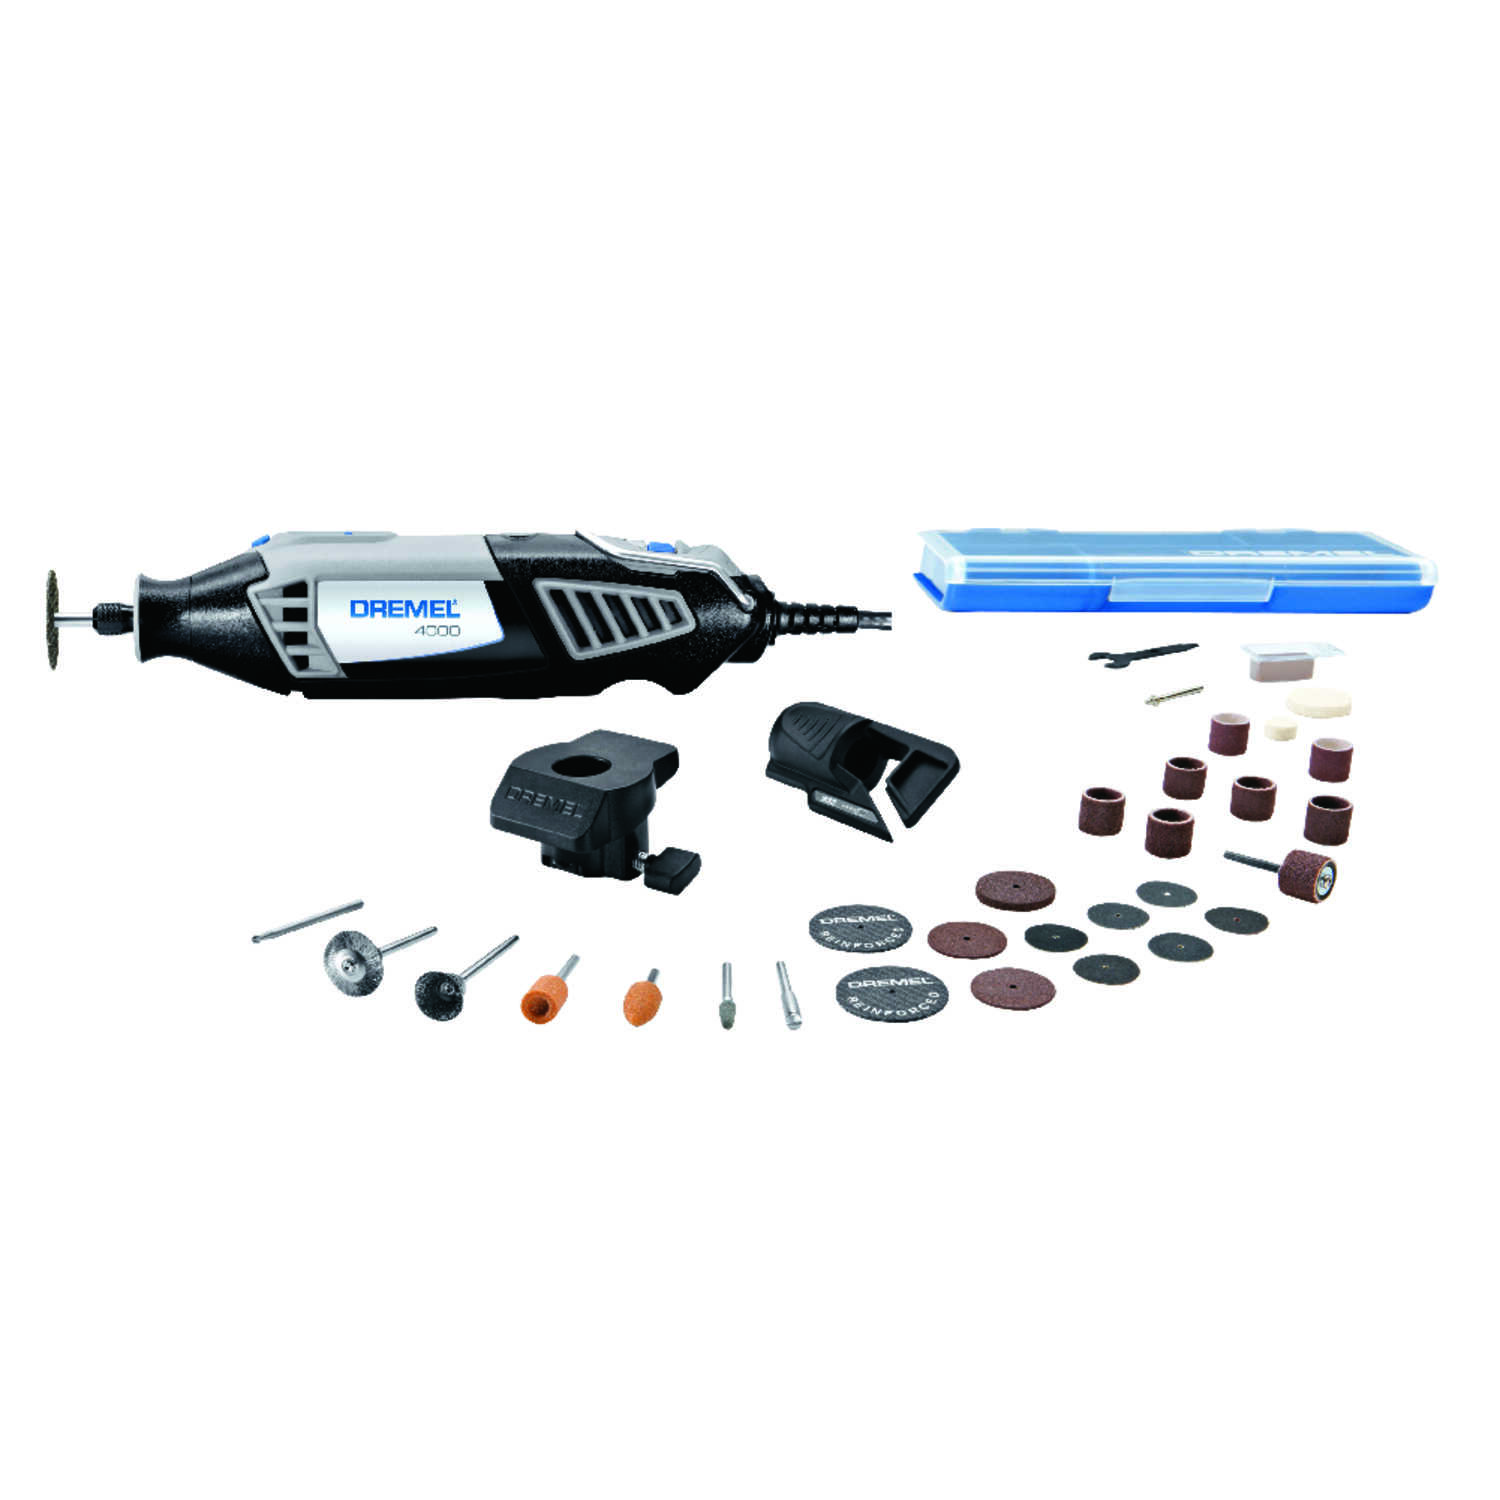 Dremel  4000  1/8 in. Corded  Rotary Tool  Kit 120 volt 30 pc. 35000 rpm